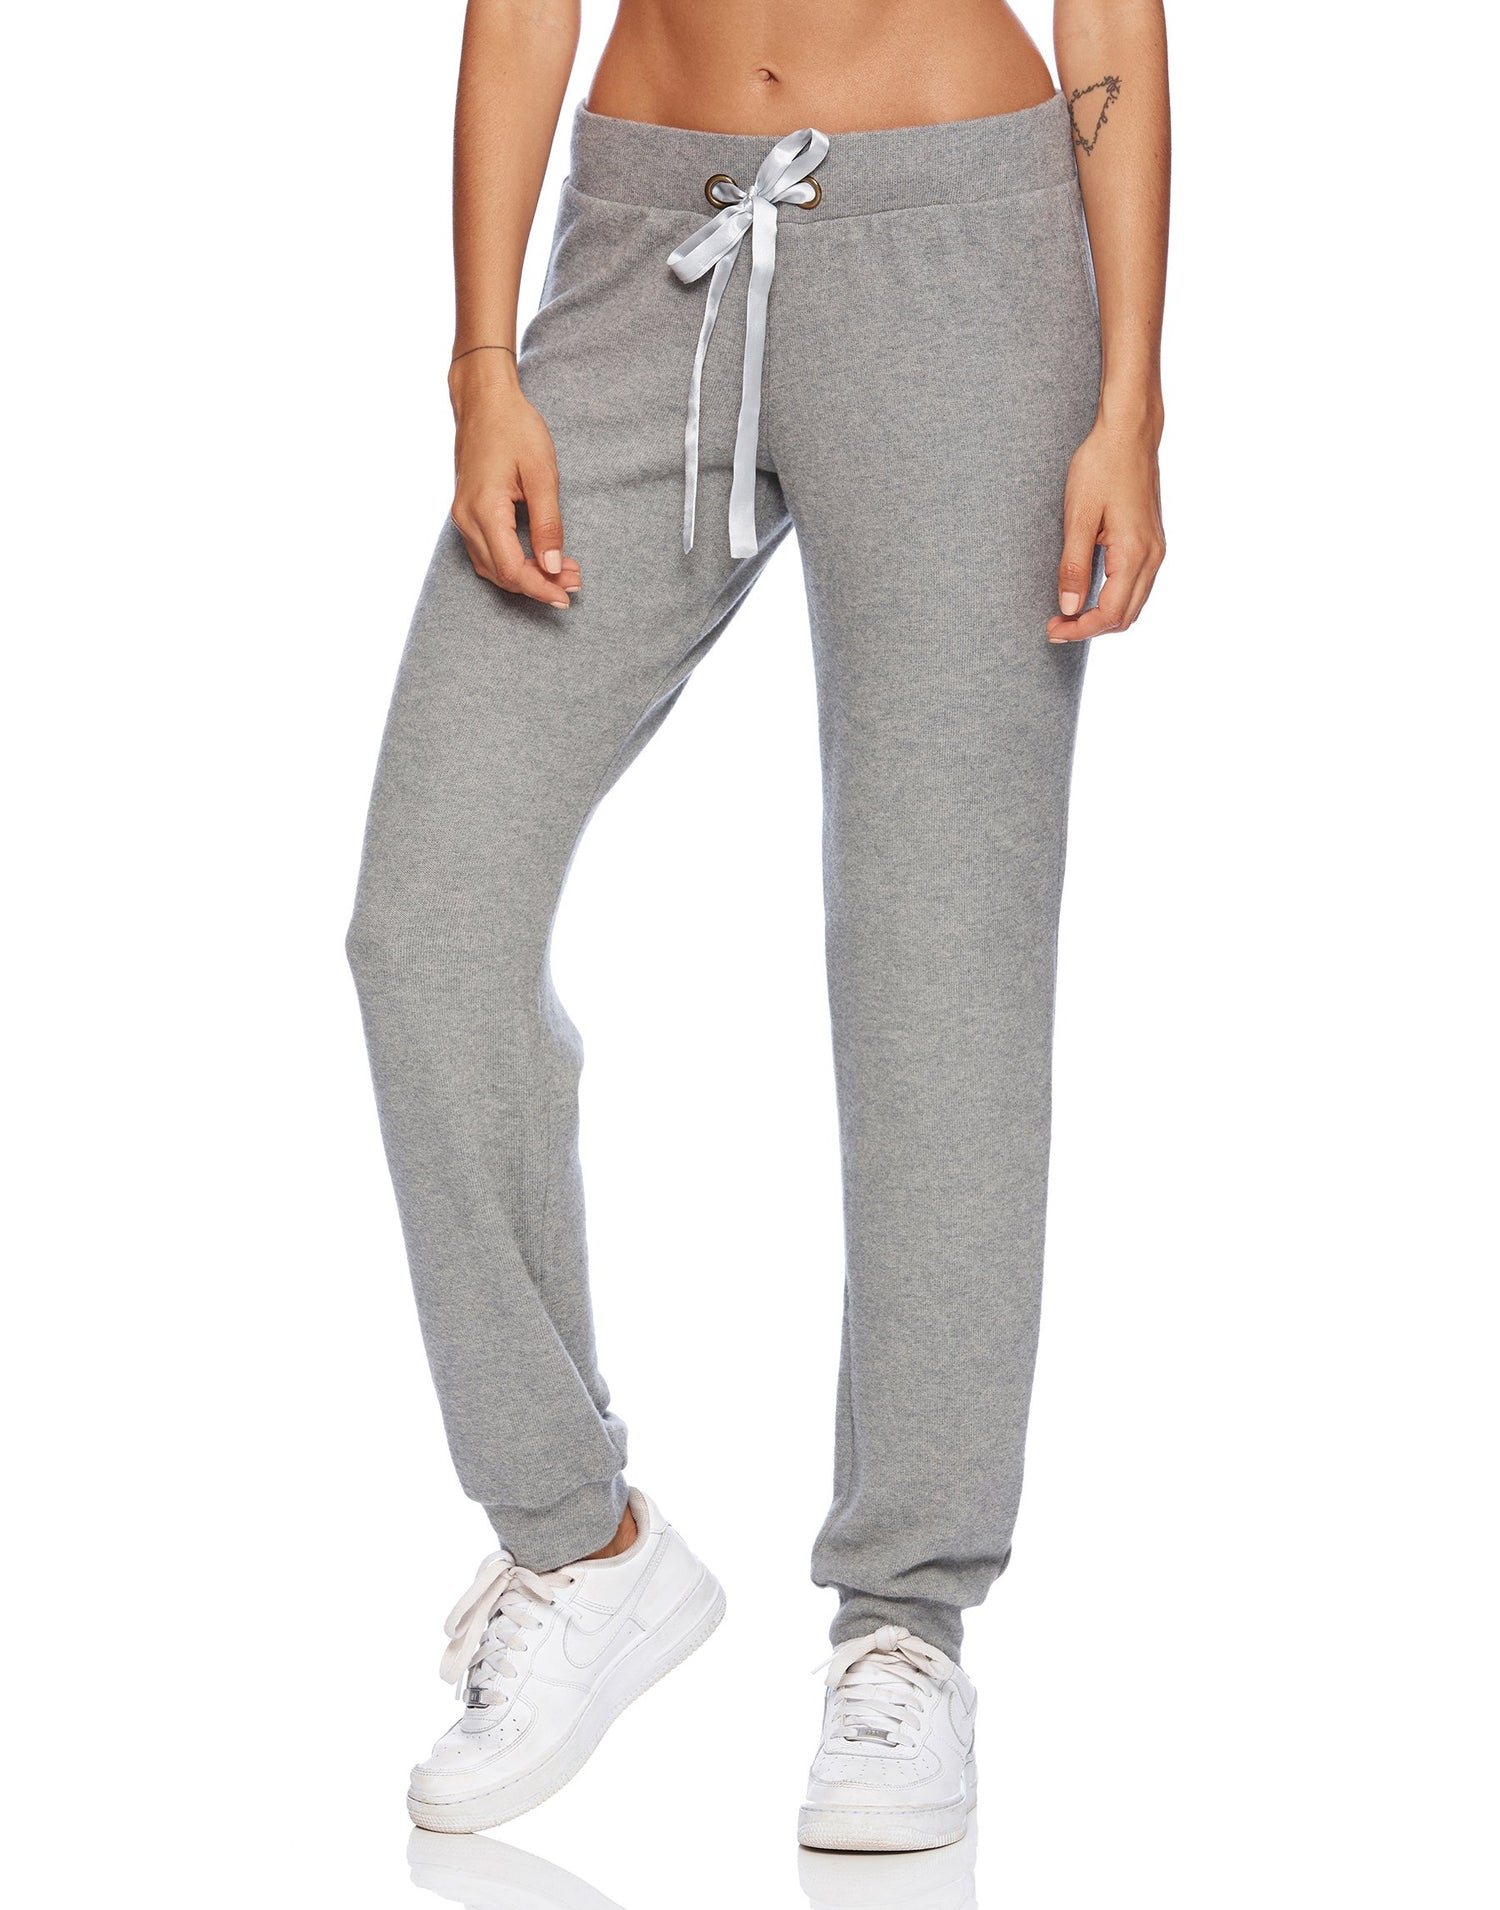 Josie Jogger in Heather Gray - alternate front view